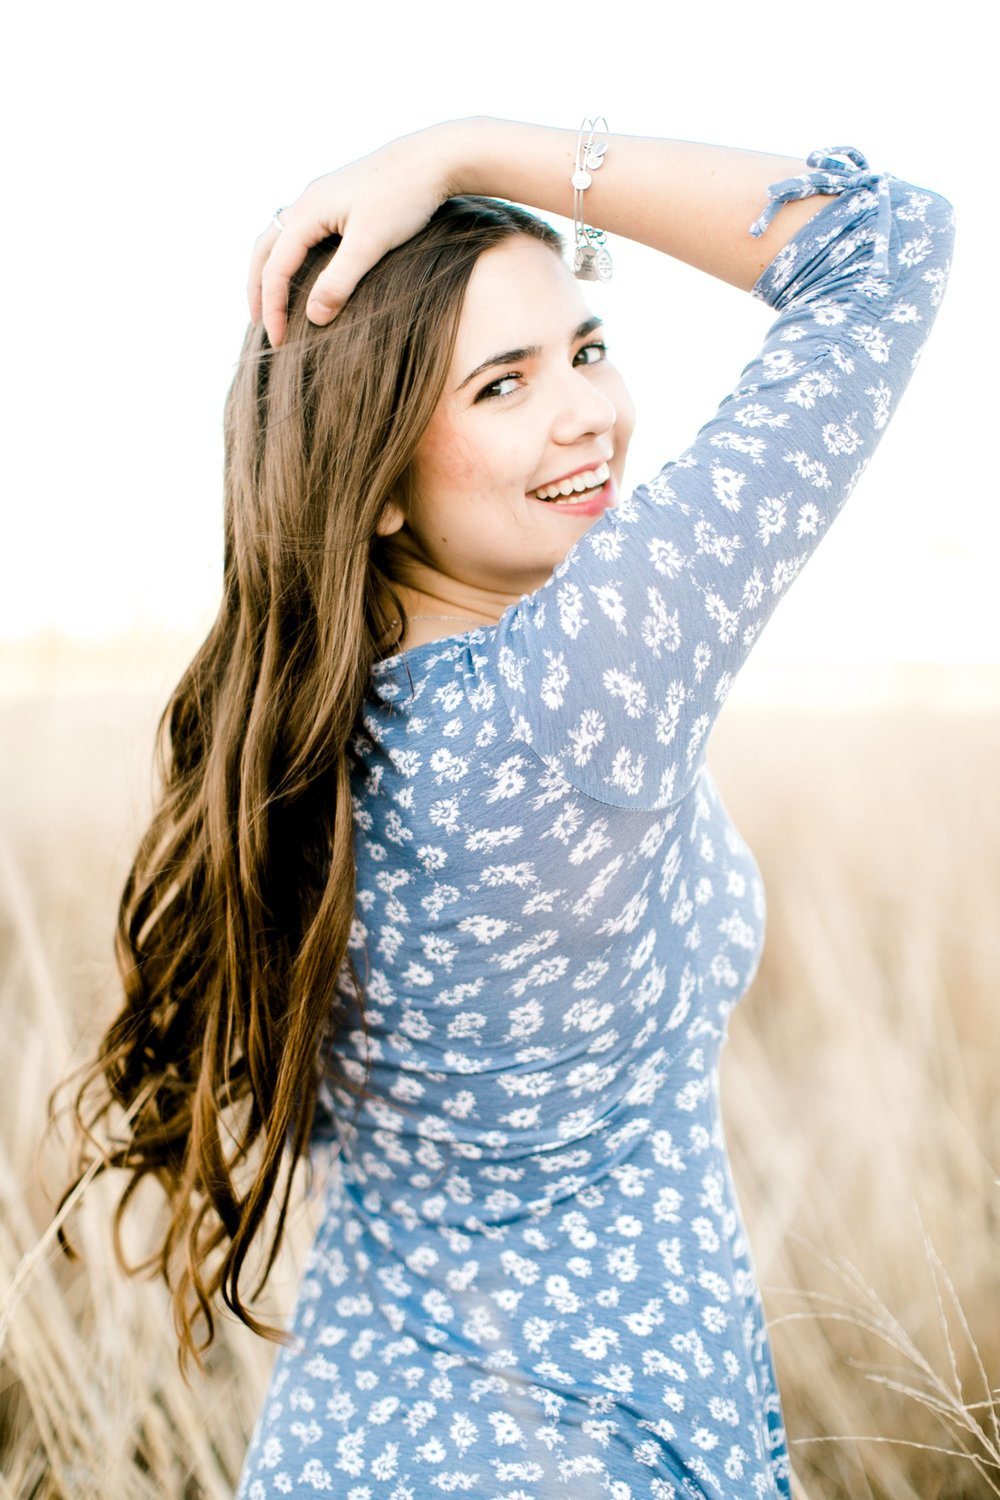 Emma-Stapleton-High-School-Senior-Photographer-Lubbock_0044.jpg